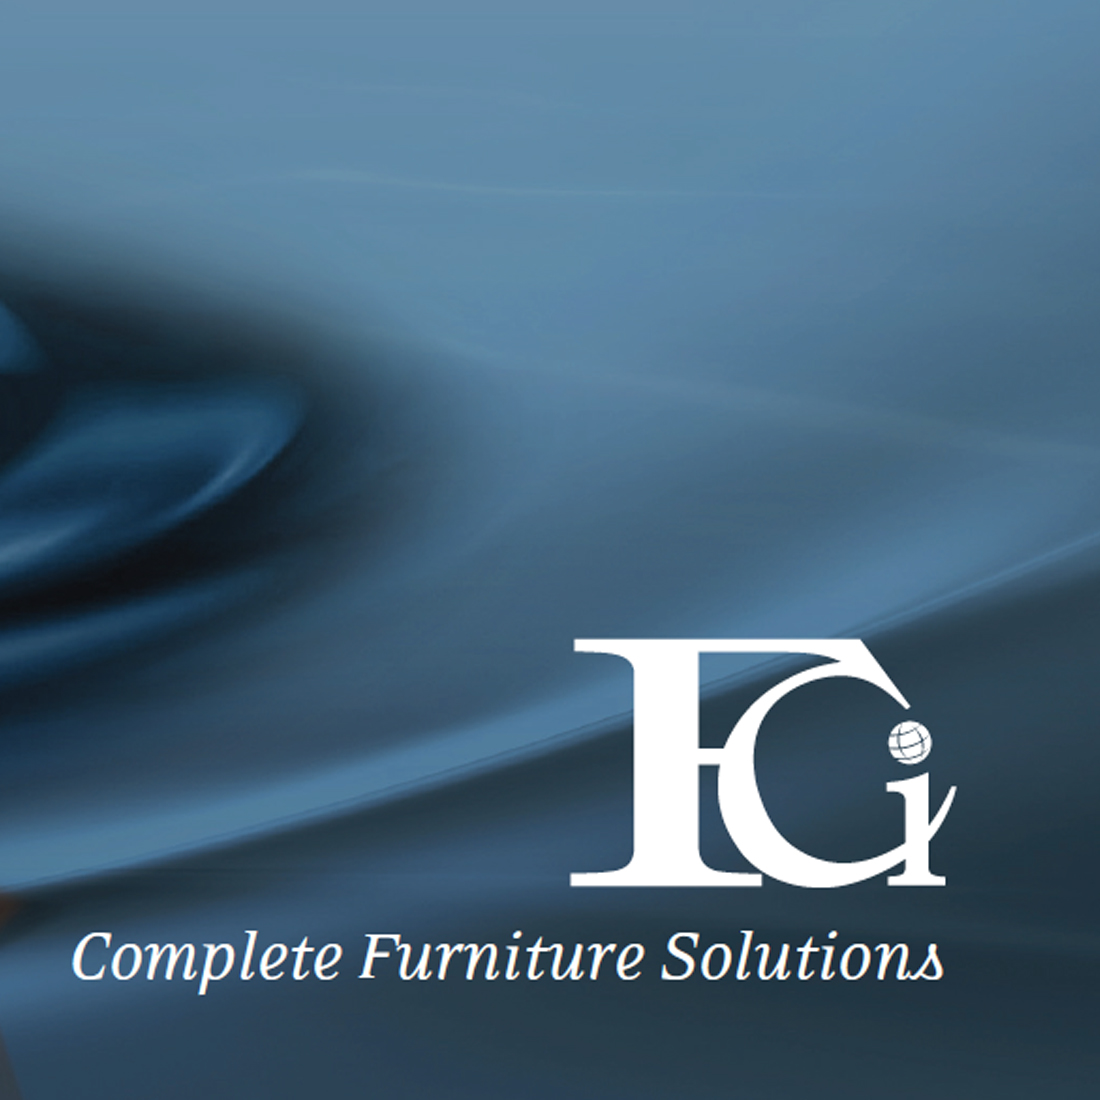 FCI Complete Furniture Solutions - Catalog Design